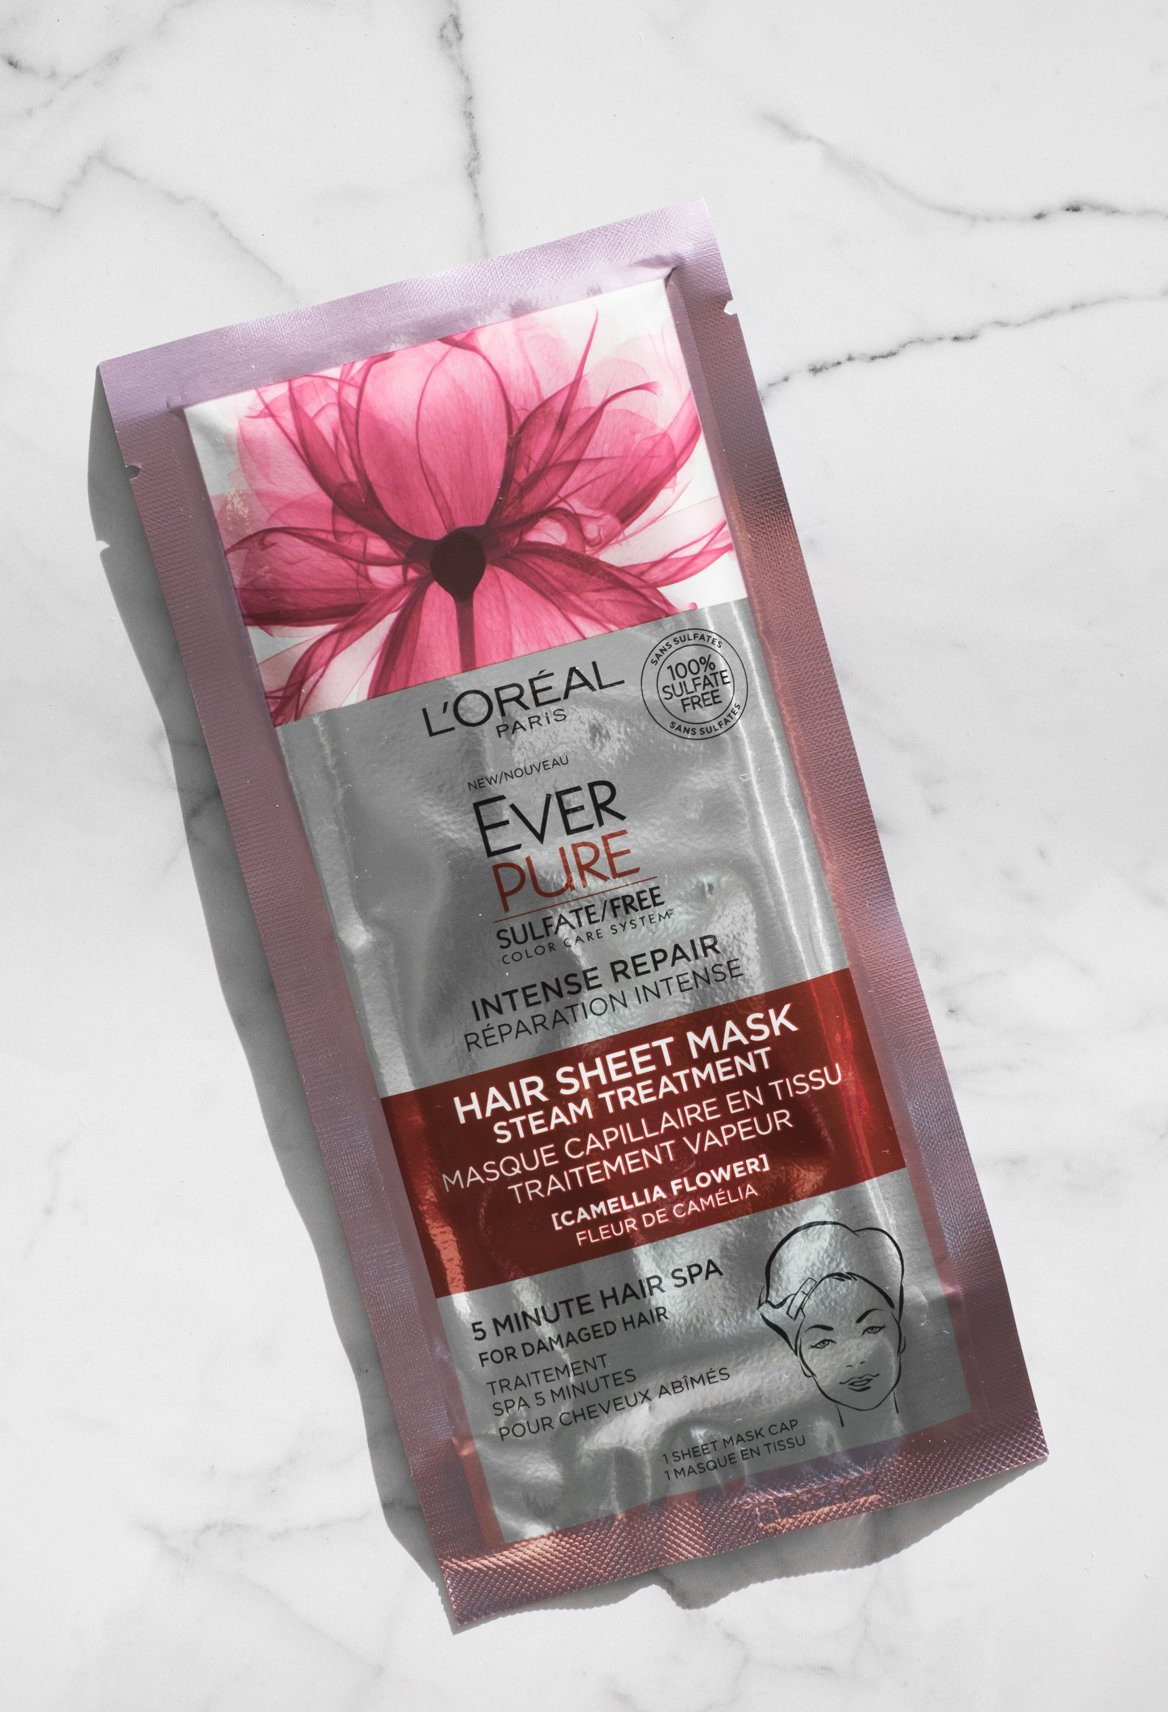 ever pure hair sheet mask